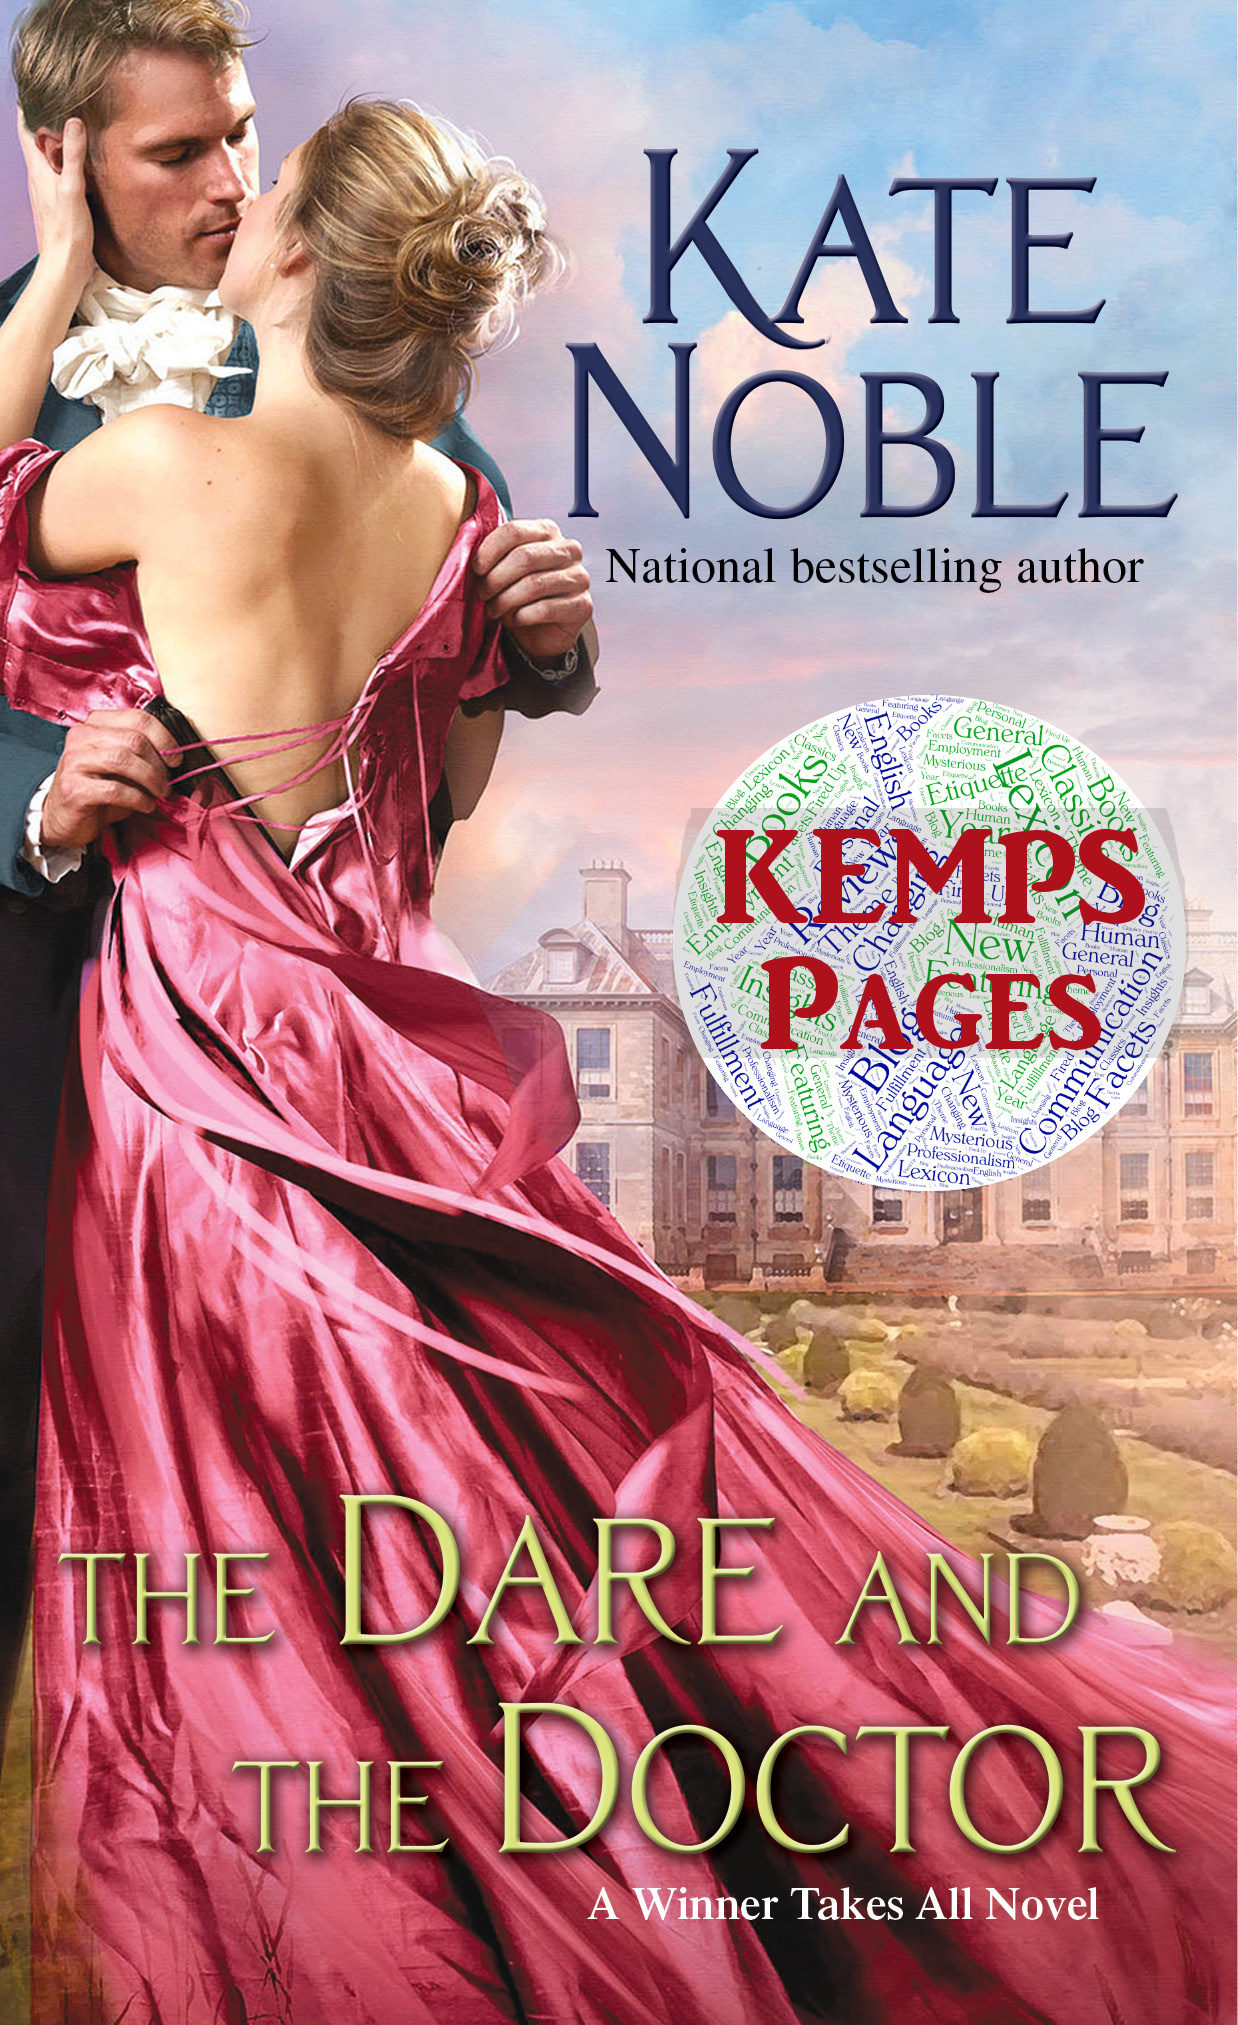 the-dare-and-the-doctor-kate-noble